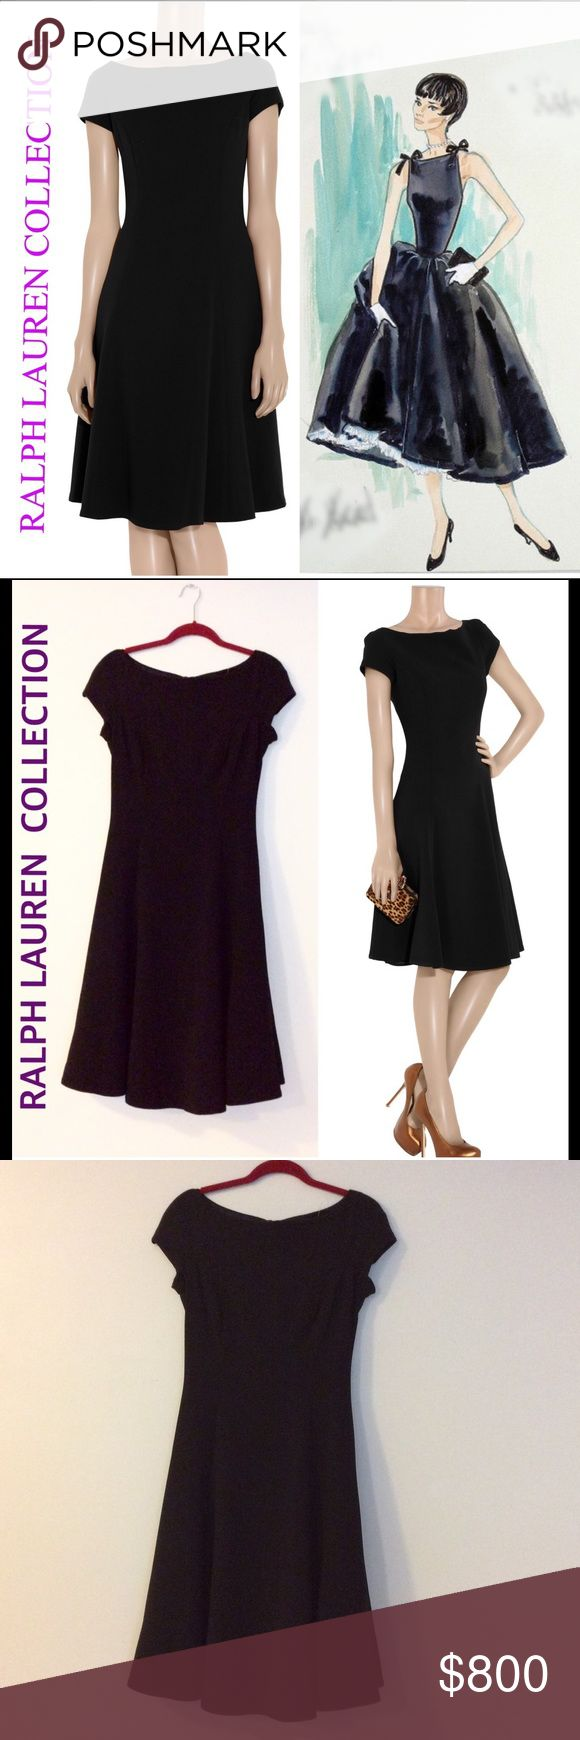 Ralph Lauren Collection LBD Channel Audrey Hepburn, in Sabrina, with this beautiful Ralph Lauren Collection black, stretch, wool blend crepe dress with flared skirt, boat neck, and cap sleeves. Composition:  96% wool, 4% elastane Lining: 95% silk, 5% elastane. Perfect cocktail LBD. Dry clean. Never worn; tag attached! Size 6. Wear with a skinny belt to accentuate your waist. Classic, elegant, sophisticated!! Ralph Lauren Purple Label Dresses